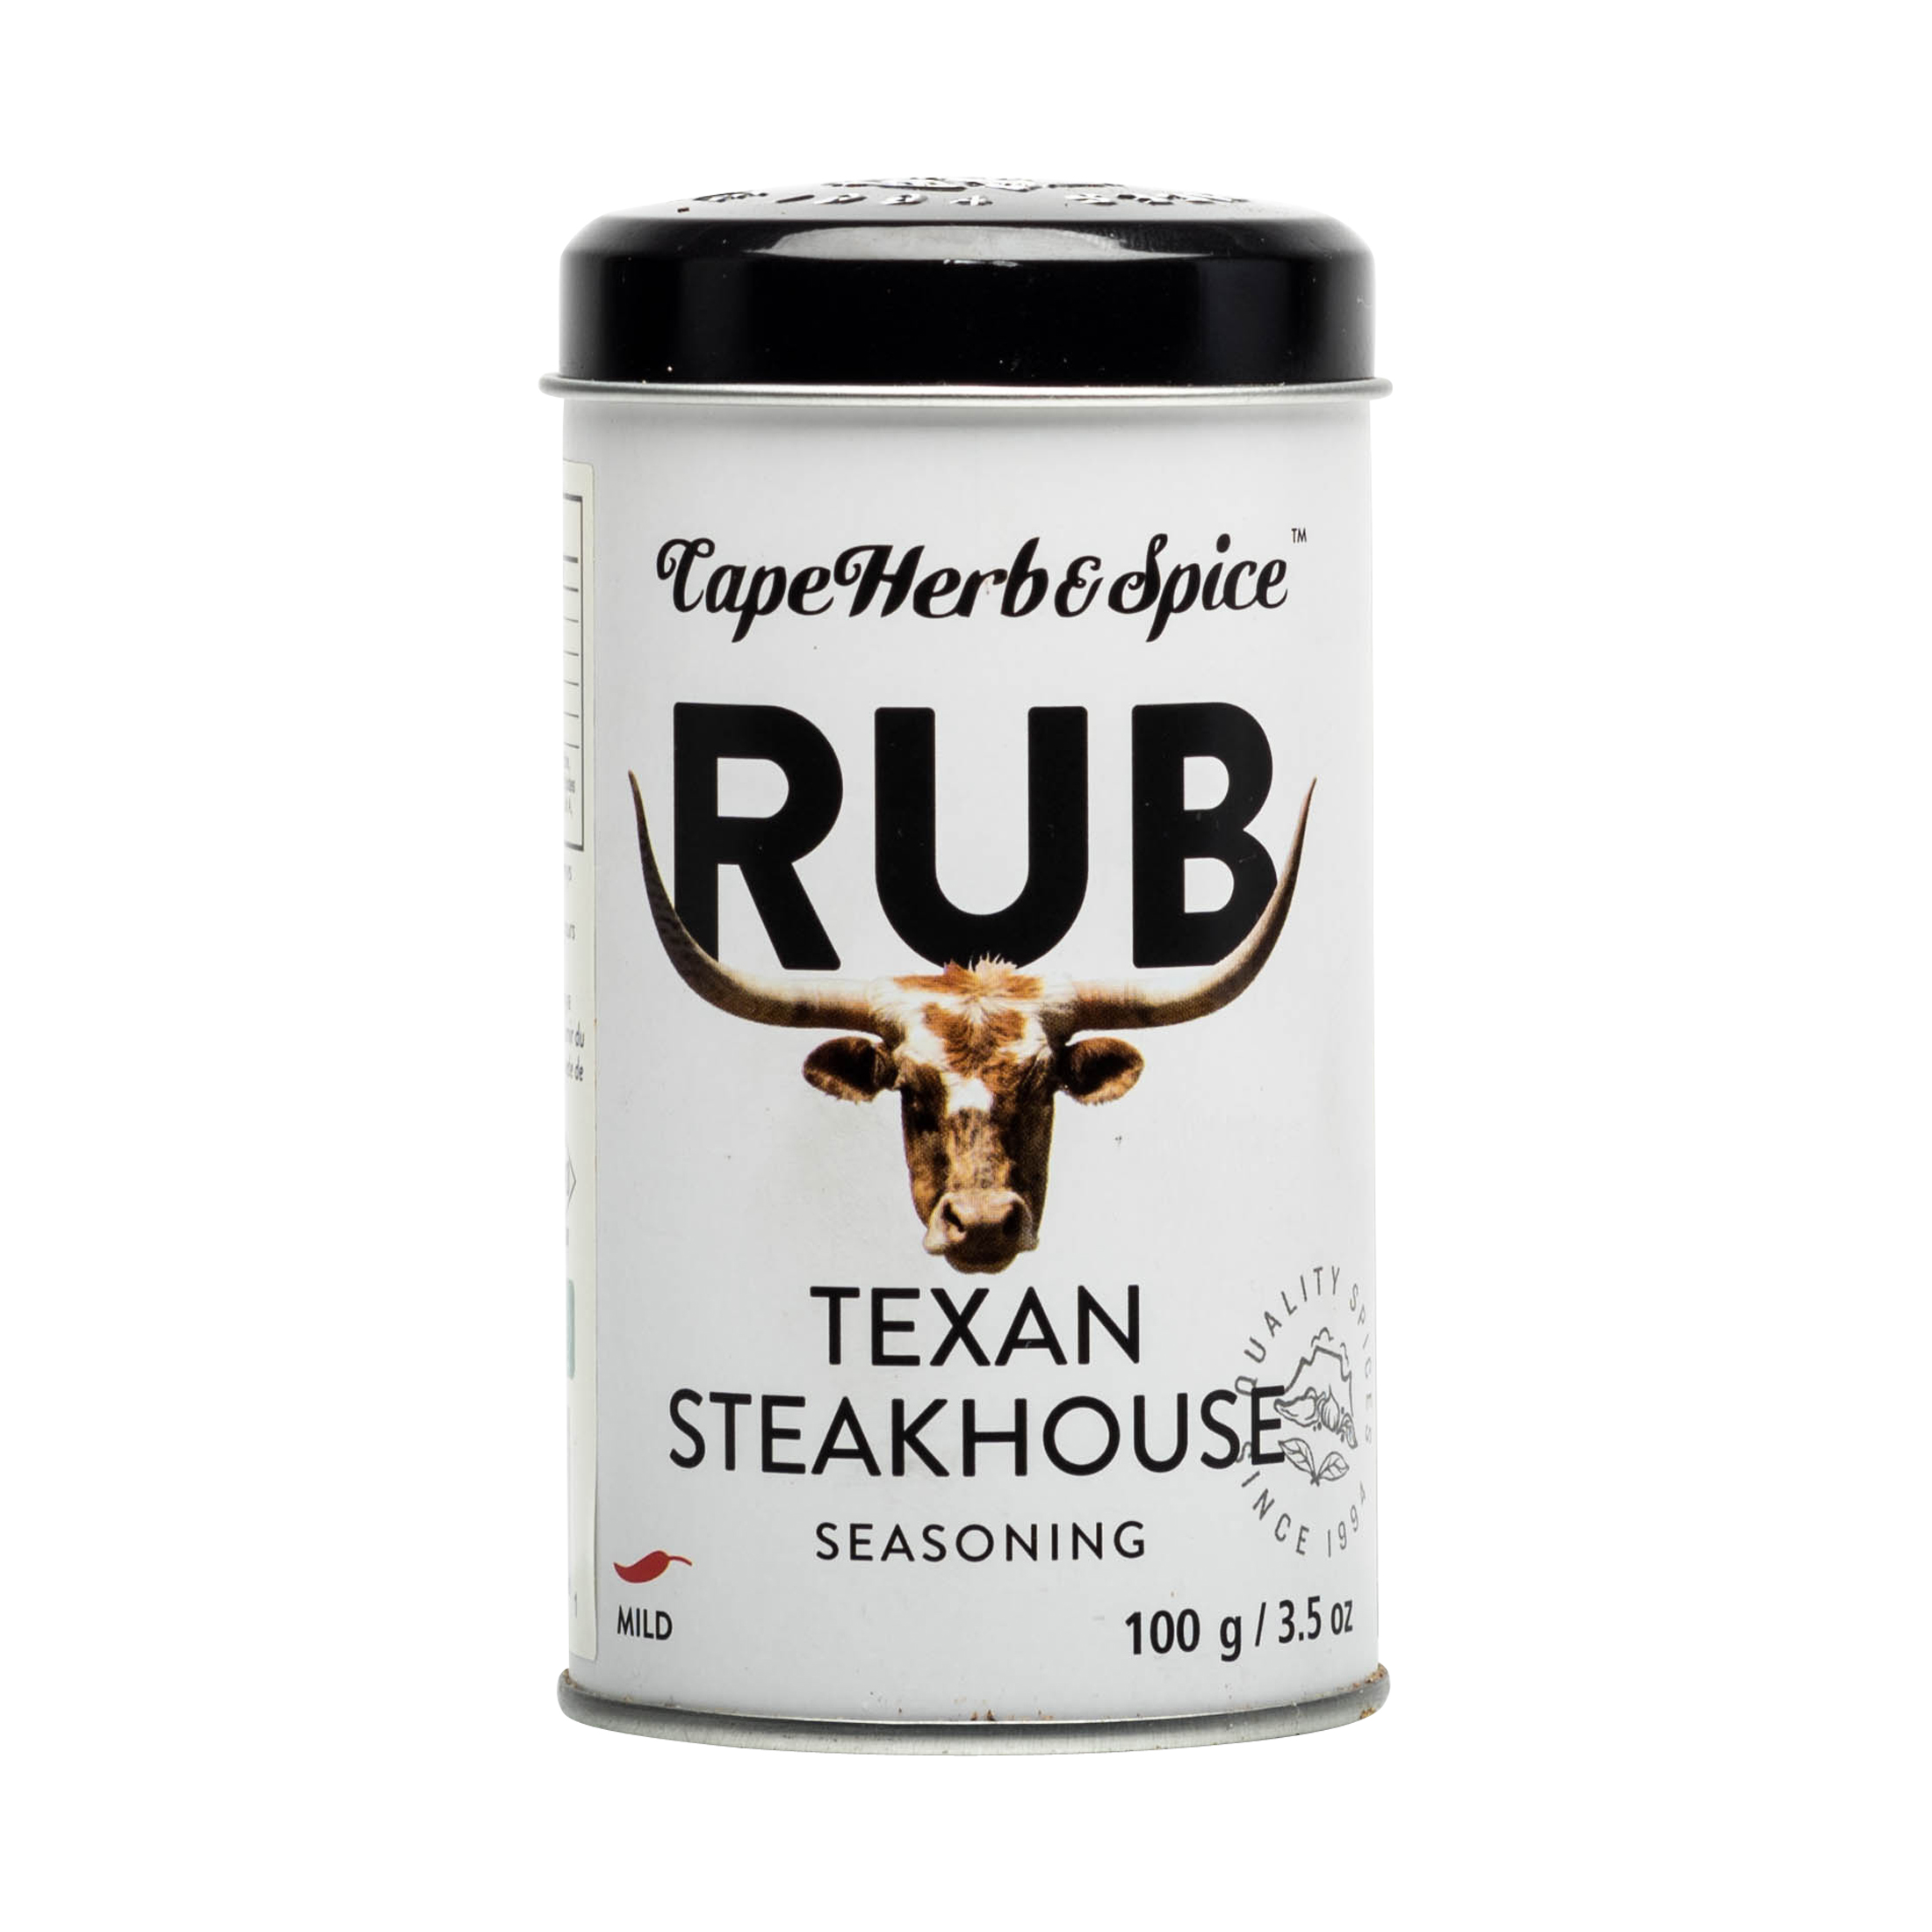 TEXAS STEAKHOUSE RUB SHAKER